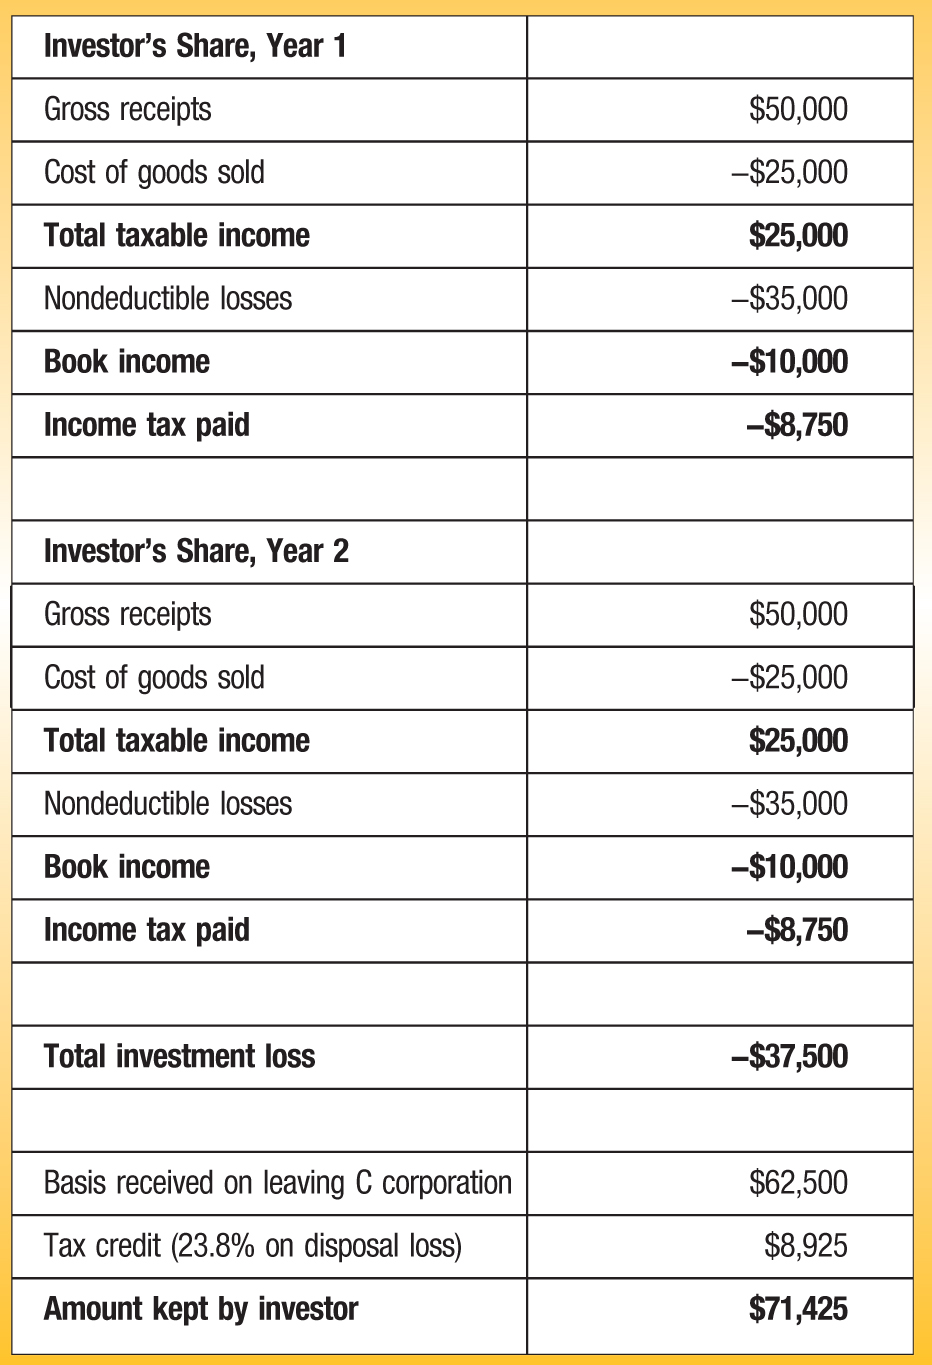 Investor's Share, Year 1 Gross receipts; $50,000 Cost of goods sold; −$25,000 Total taxable income; $25,000 Nondeductible losses; −$35,000 Book income; −$10,000 Income tax paid; −$8,750 Investor's Share, Year 2 Gross receipts; $50,000 Cost of goods sold; −$25,000 Total taxable income; $25,000 Nondeductible losses; −$35,000 Book income; −$10,000 Income tax paid; −$8,750 Total investment loss; −$37,500 Basis received on leaving C corporation; $62,500 Tax credit (23.8% on disposal loss); $8,925 Amount kept by investor; $71,425